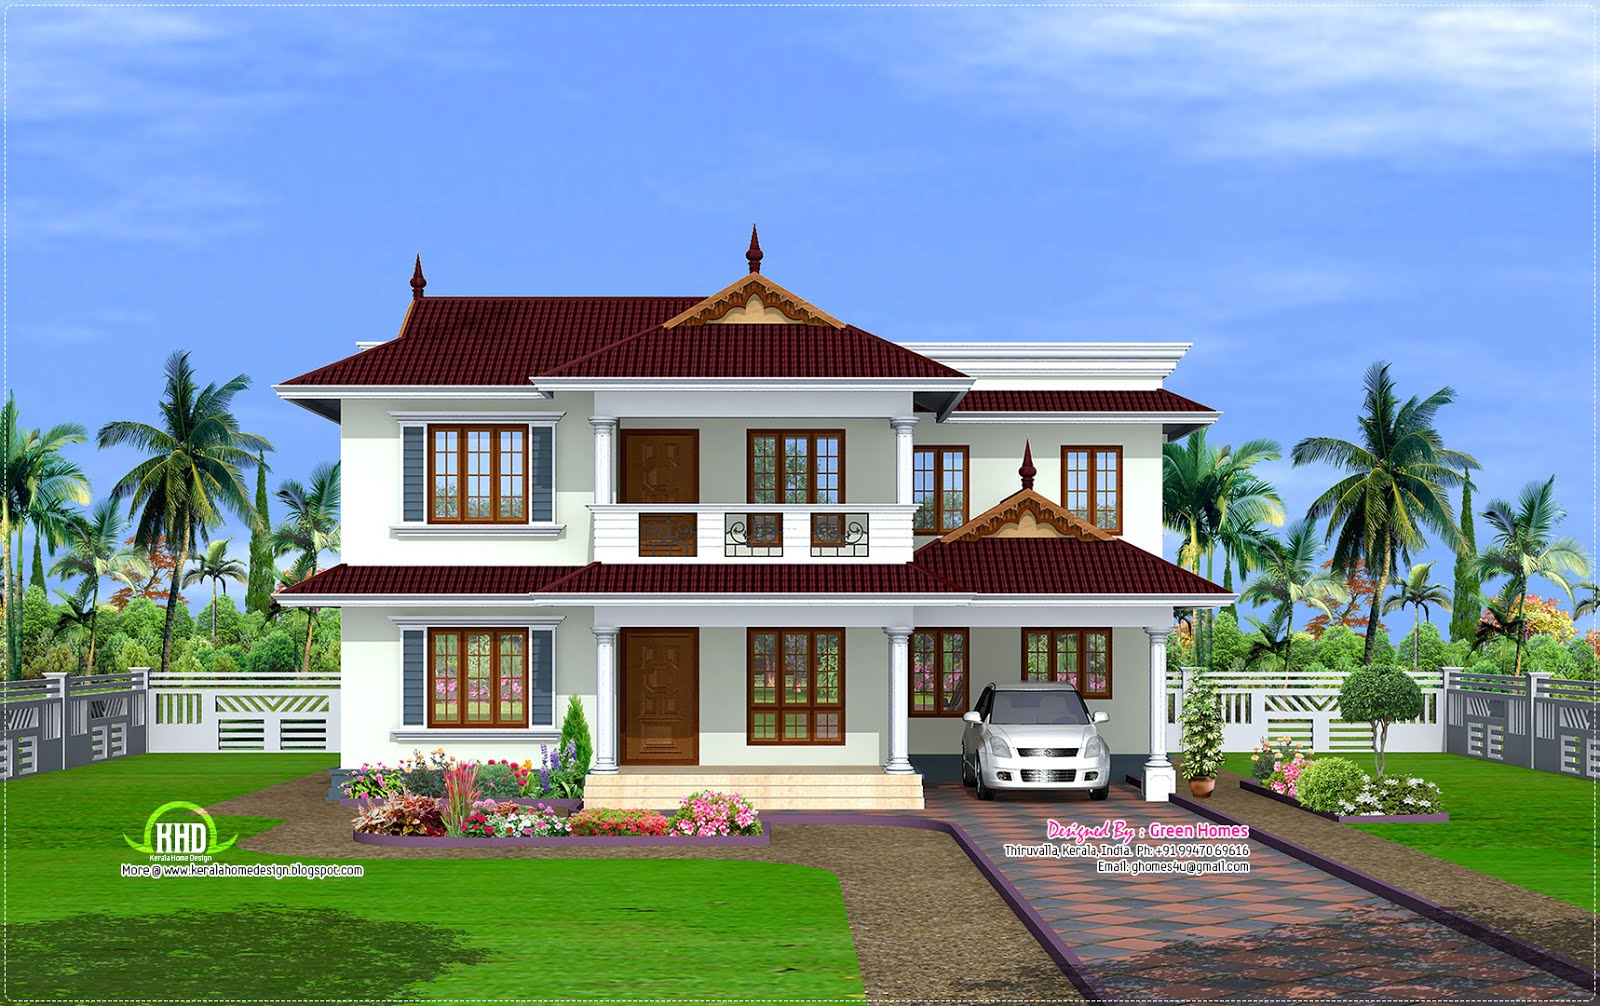 2600 kerala model house house design plans for Model home plans